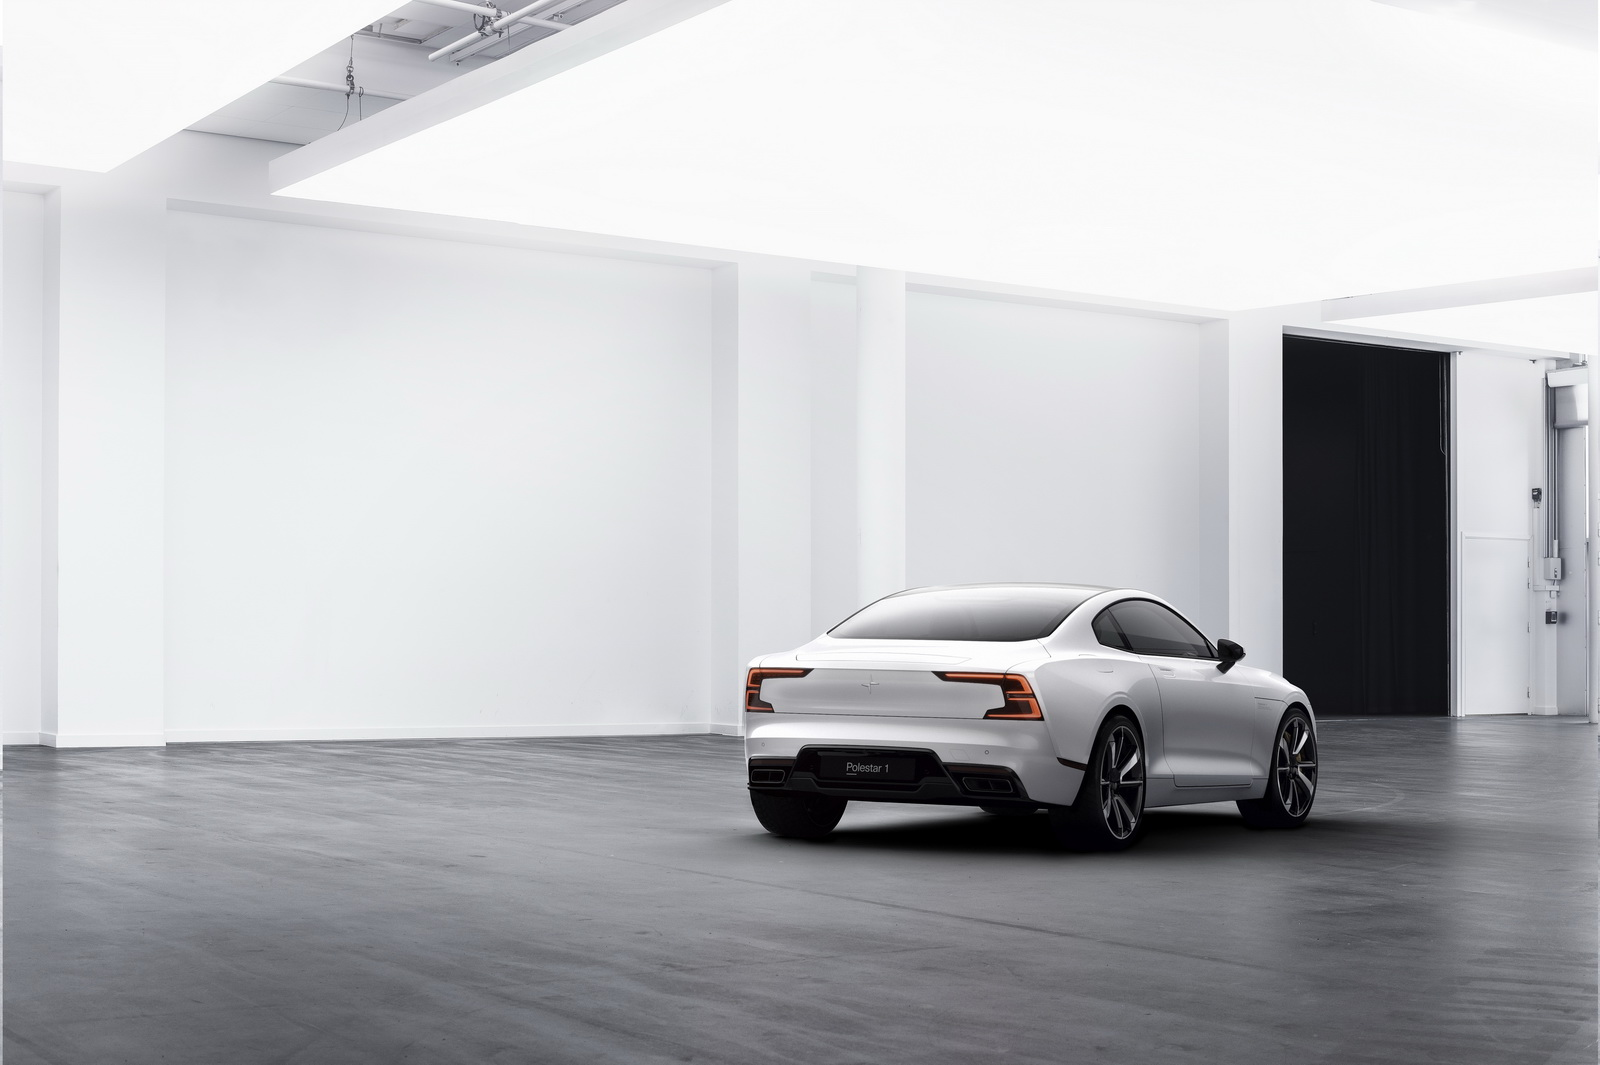 Polestar-1-Production-Increase-4.jpg